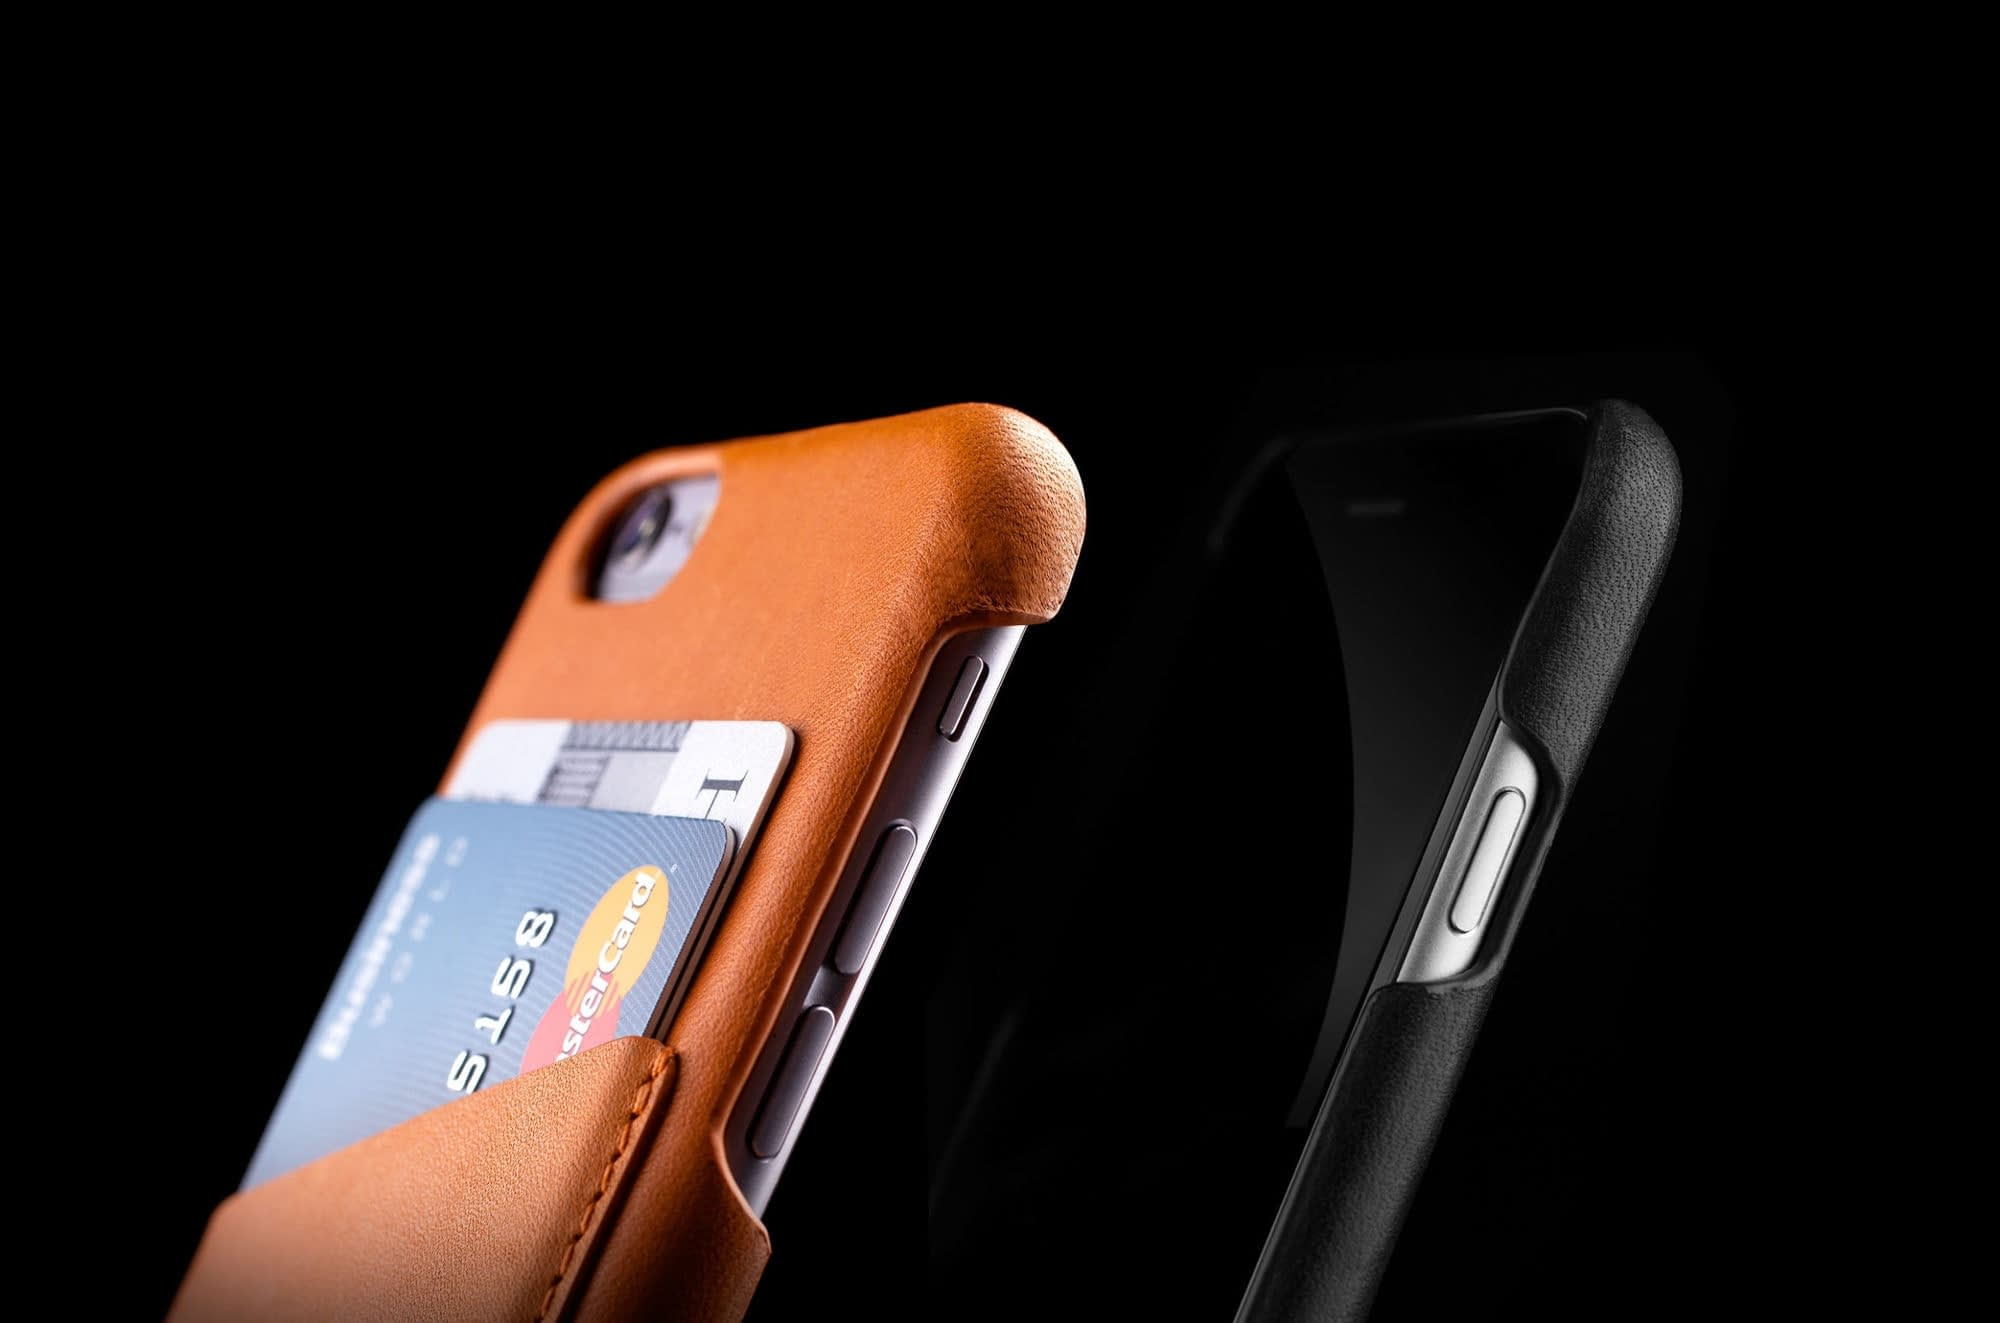 Header Leather Wallet Case for iPhone 6 Black Tan Lifestyle 010